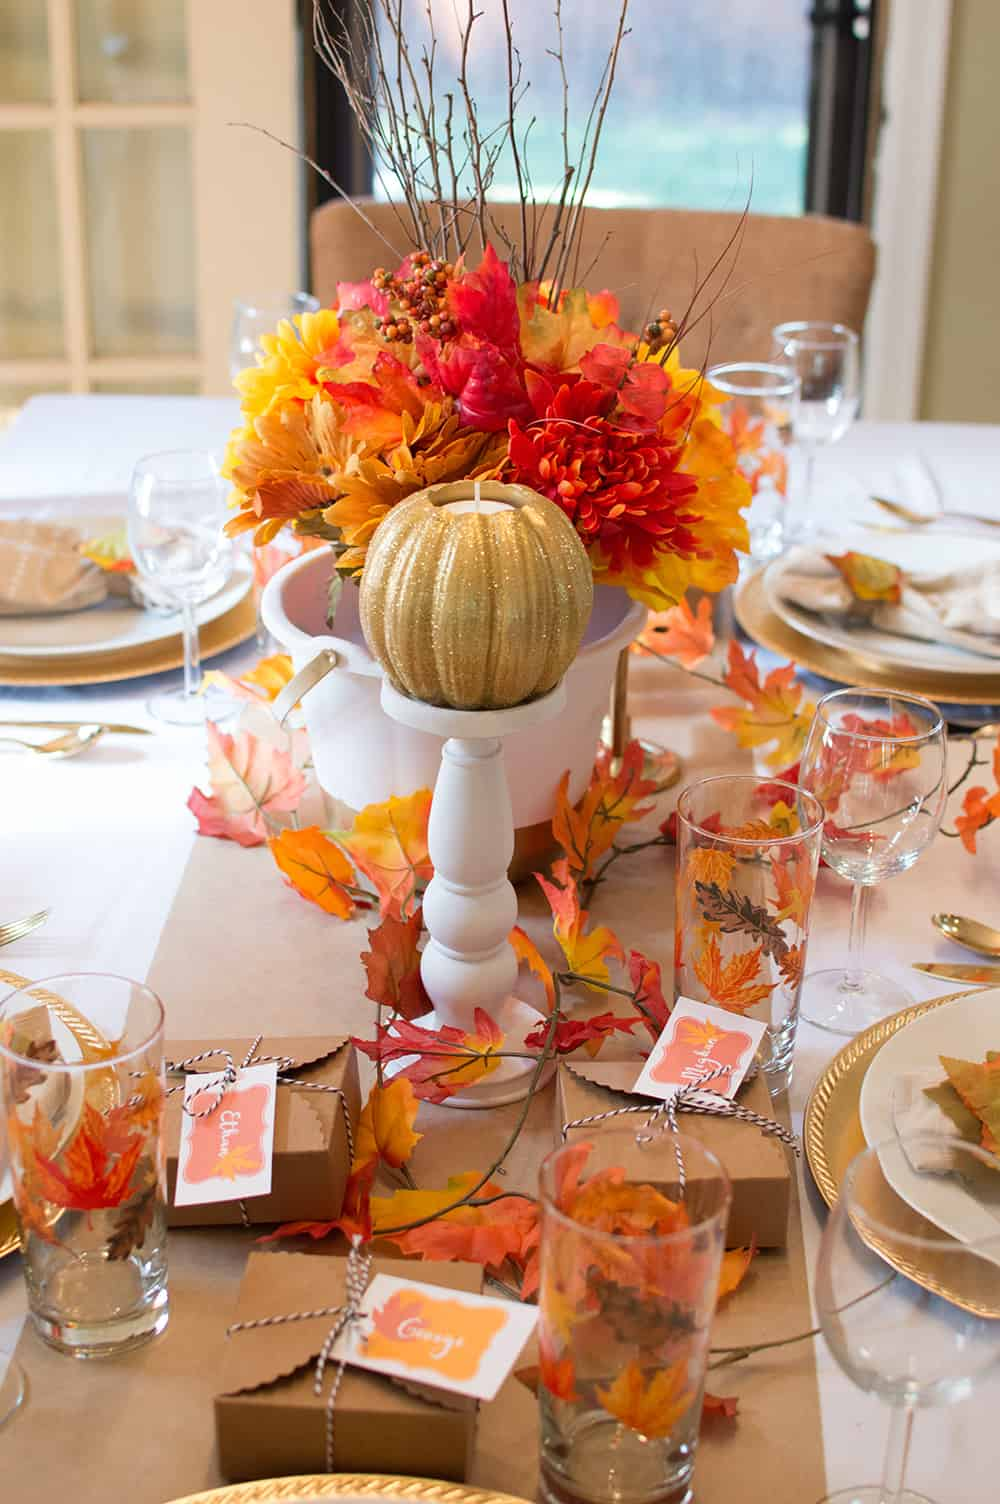 Fall Candlesticks with Pumpkin Candles